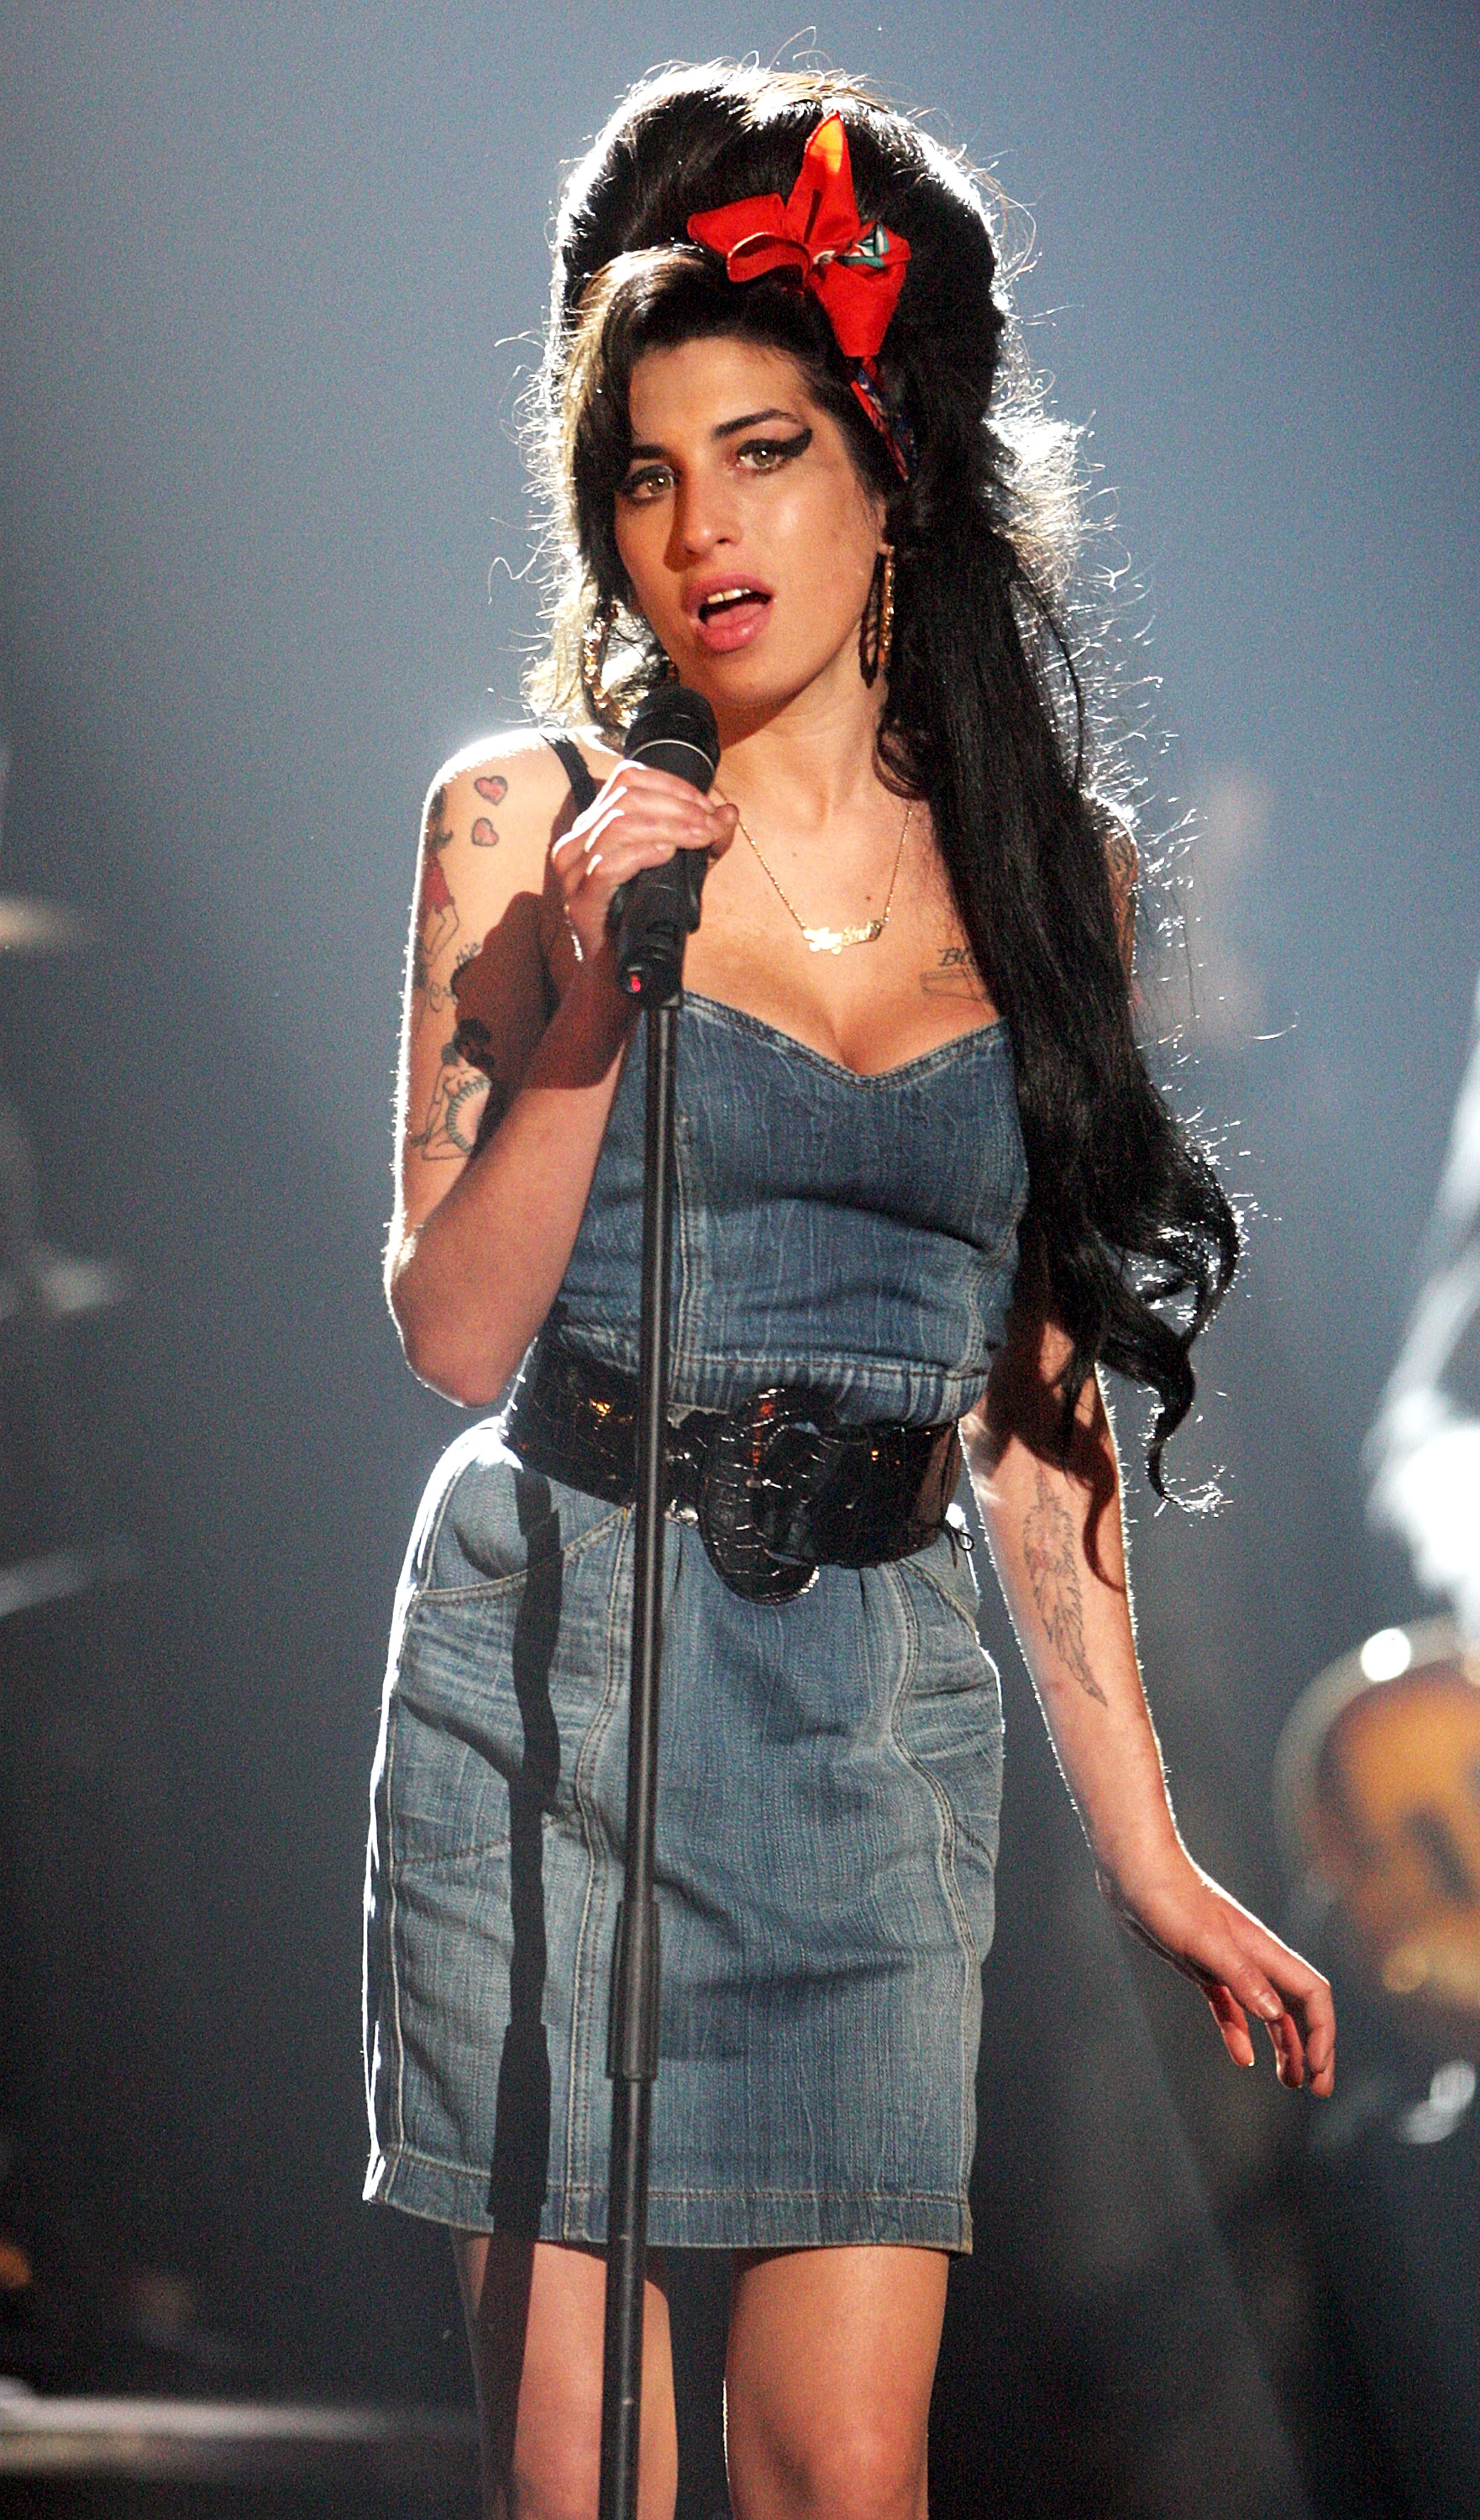 Amy Winehouse Leaked Photos footage of amy winehouse singing at the age of 14 will make